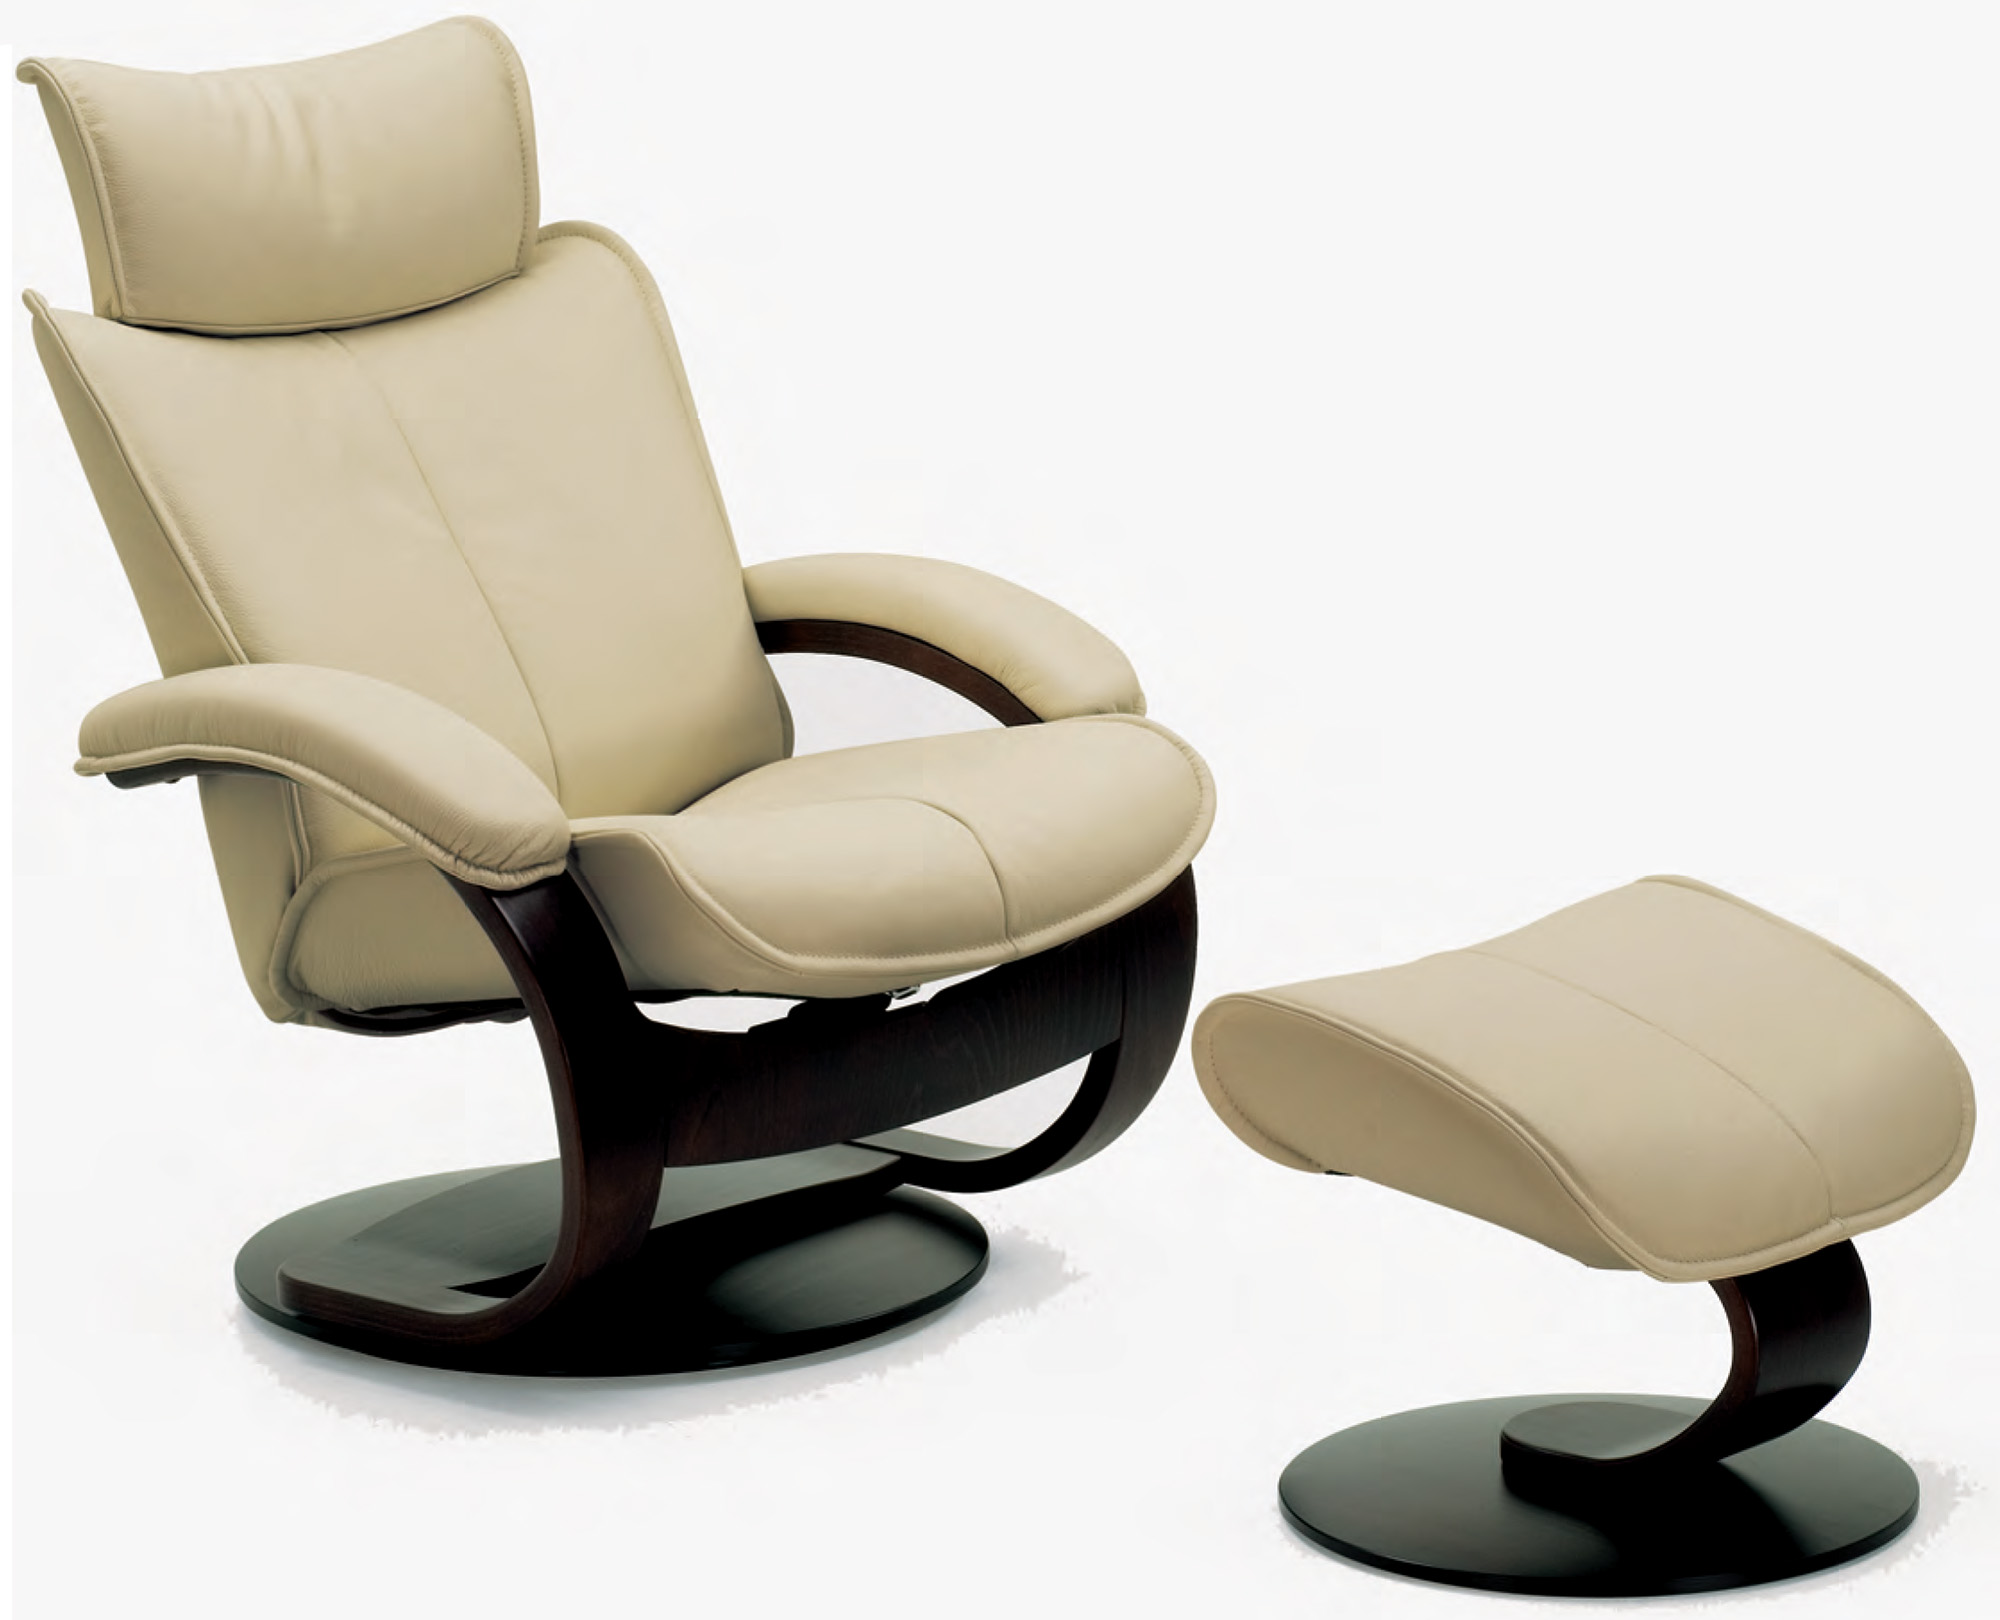 Favorite Ottoman Fjords Ona Ergonomic Lear Recliner Chair Ottoman Scandinavian Lounger Fjords Ona Ergonomic Lear Recliner Chair Ottoman Scandinavian Small Lear Club Chair furniture Small Leather Chairs With Ottomans